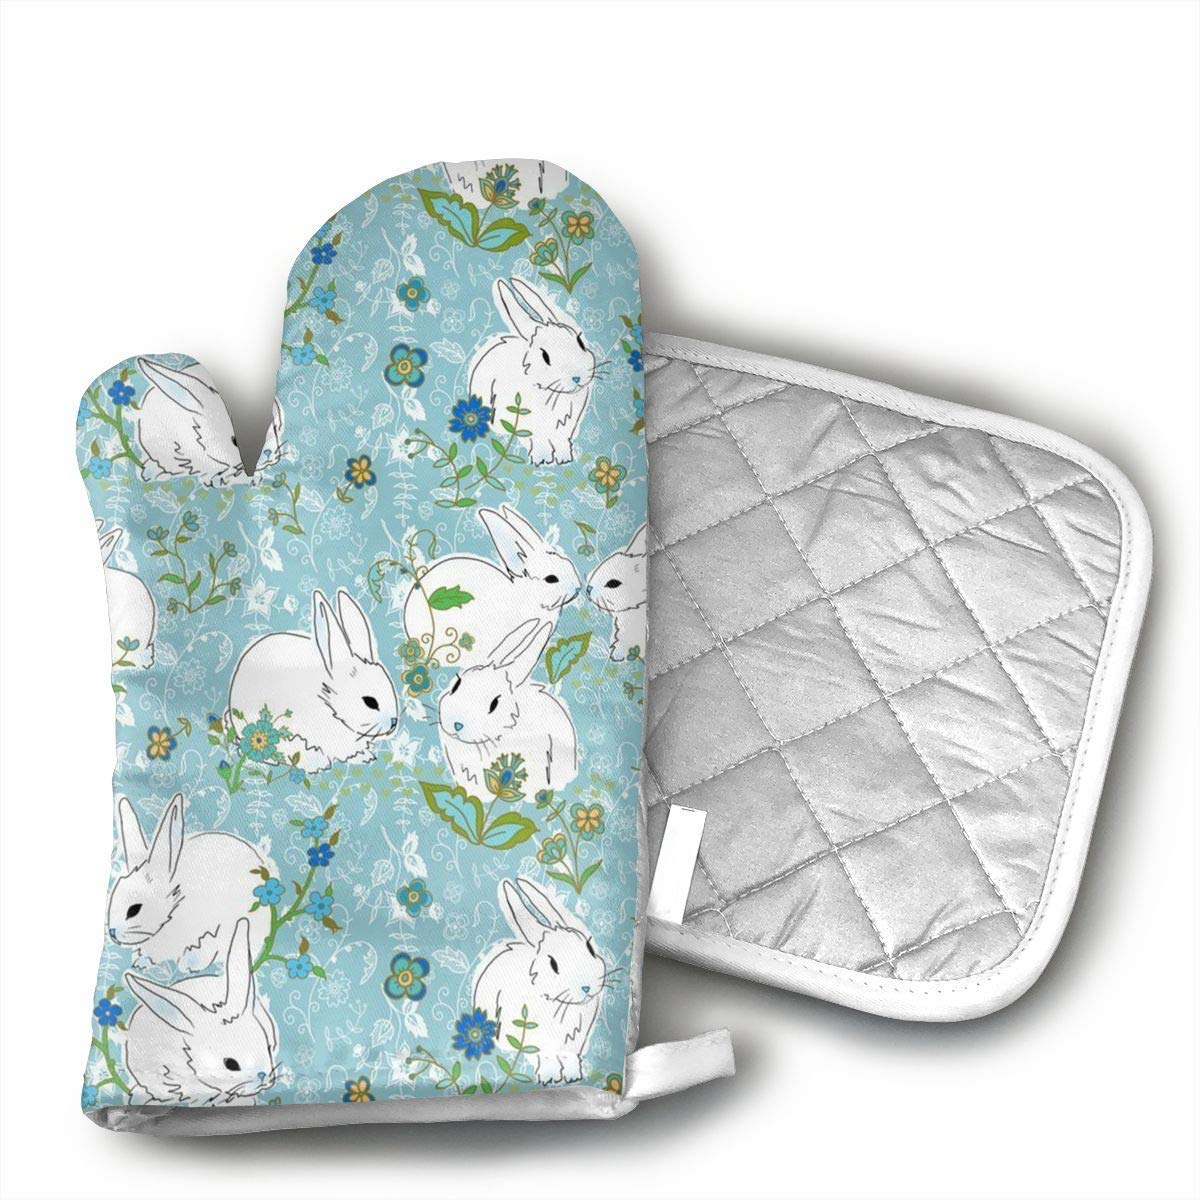 NoveltyGloves Pot Holders and Oven Mitts 1 Hot Pads and 1 Potholders Set with Love Bunny Rabbit Print